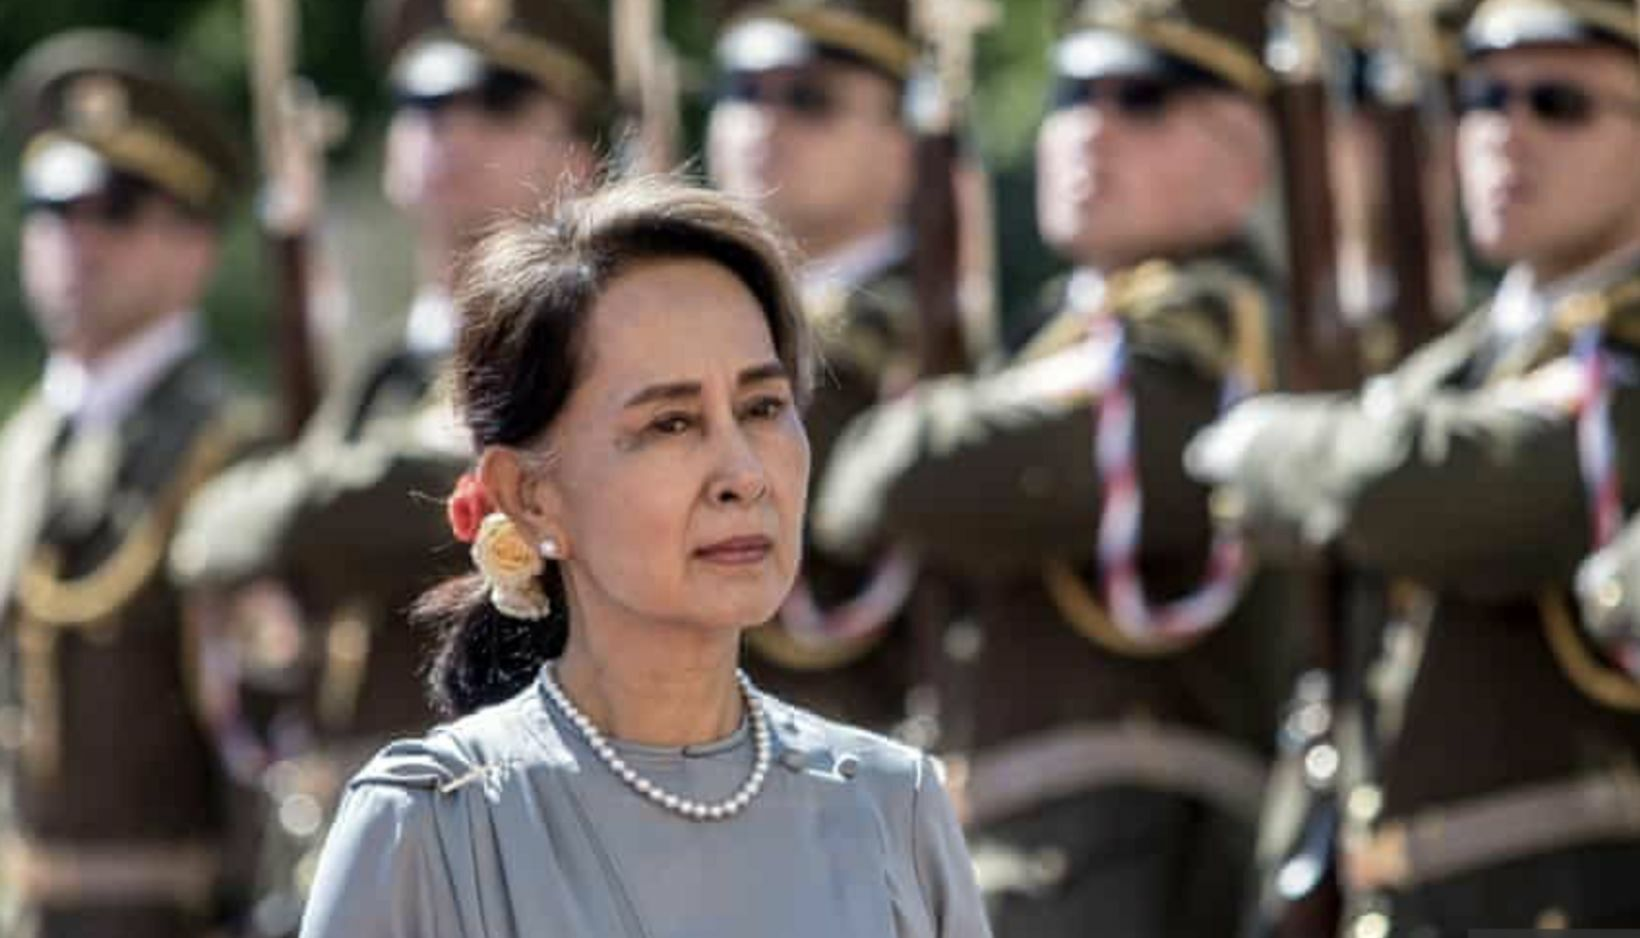 Myanmar's Aung San Suu Kyi arrested and detained, NLD spokesman | Thaiger